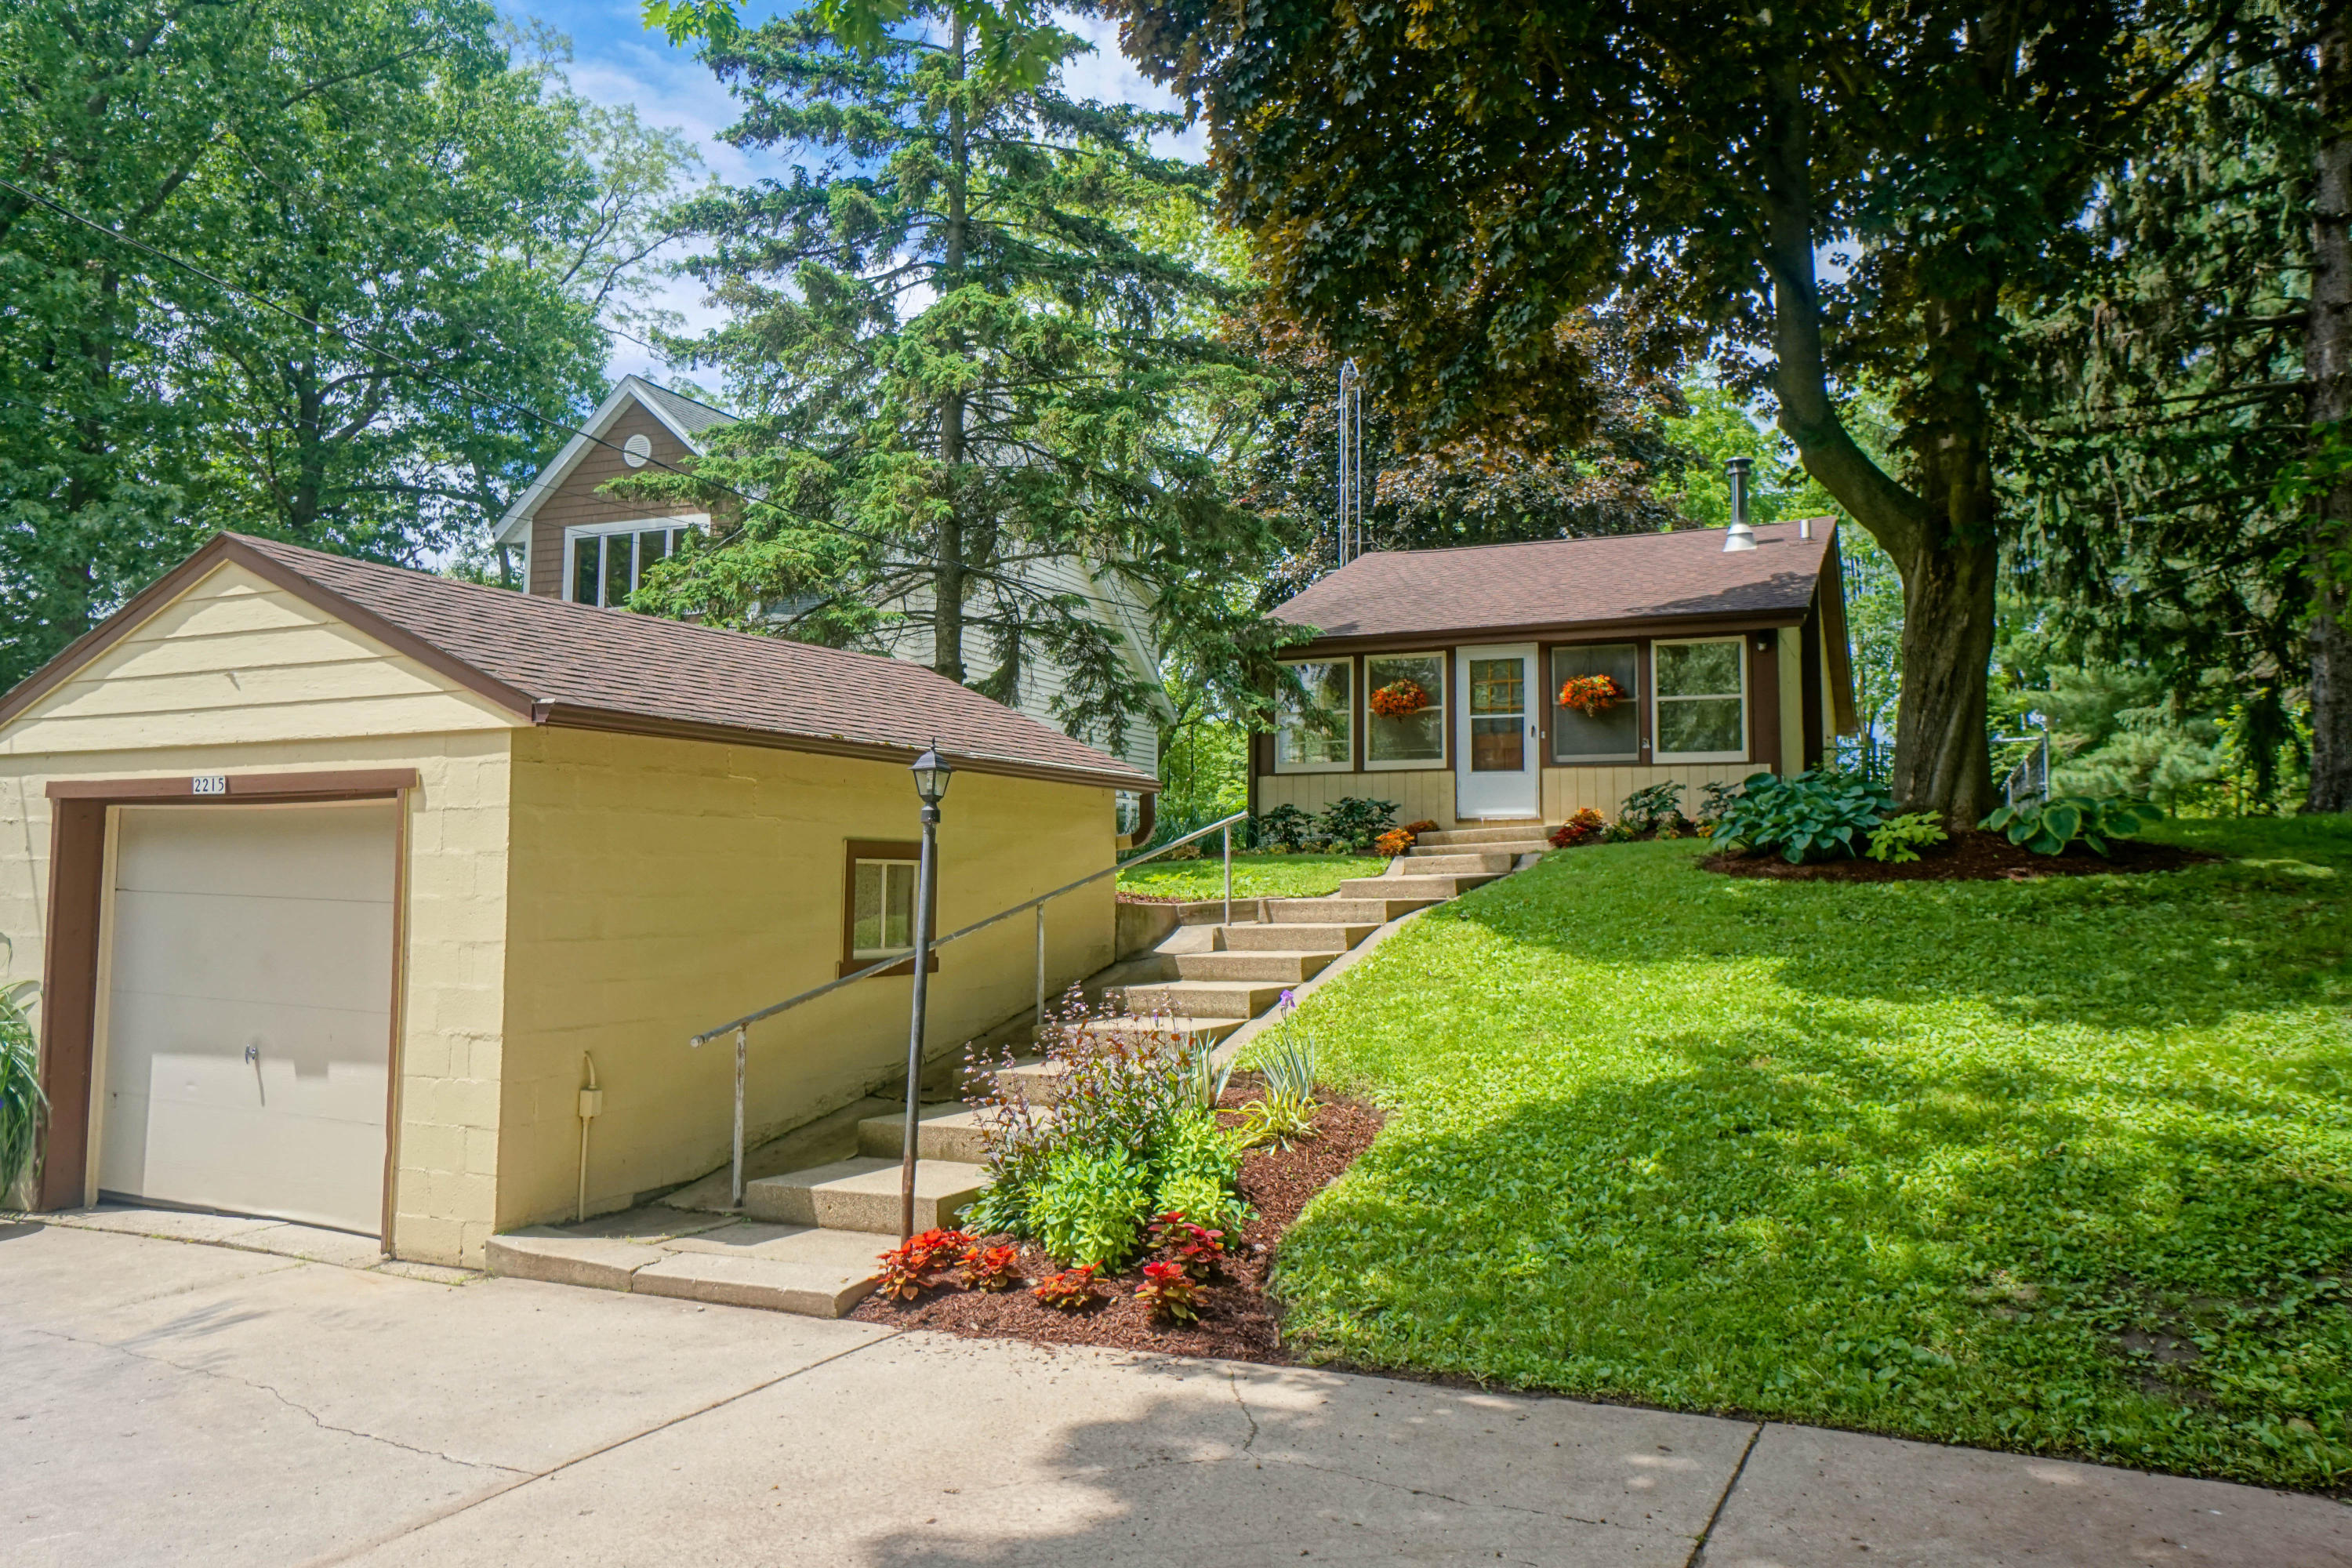 2215 Shore Dr, Delafield, Wisconsin 53018, 2 Bedrooms Bedrooms, 5 Rooms Rooms,1 BathroomBathrooms,Single-Family,For Sale,Shore Dr,1644046